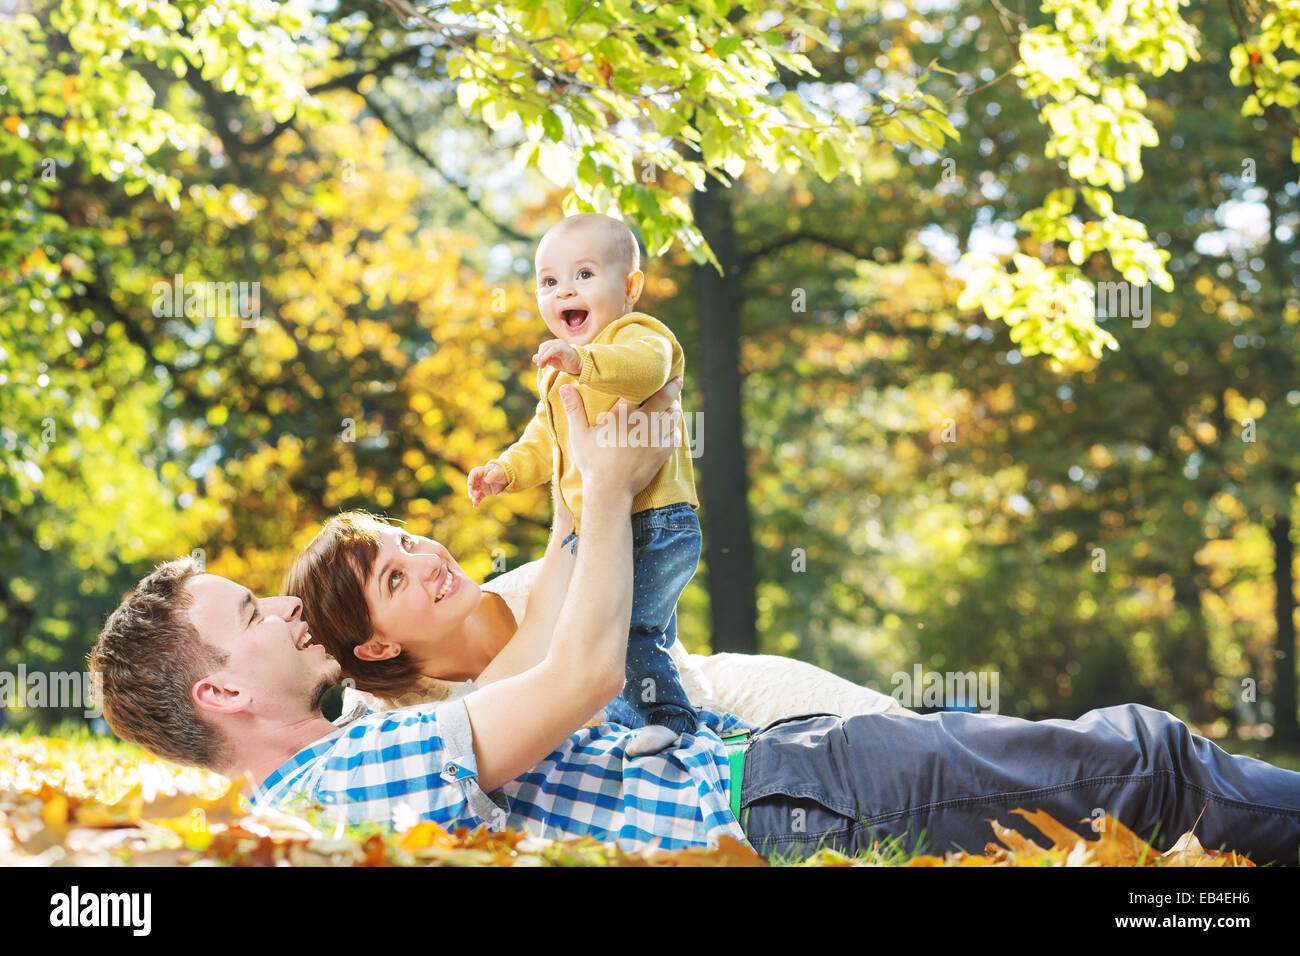 Caring parents looking after their baby - Stock Image